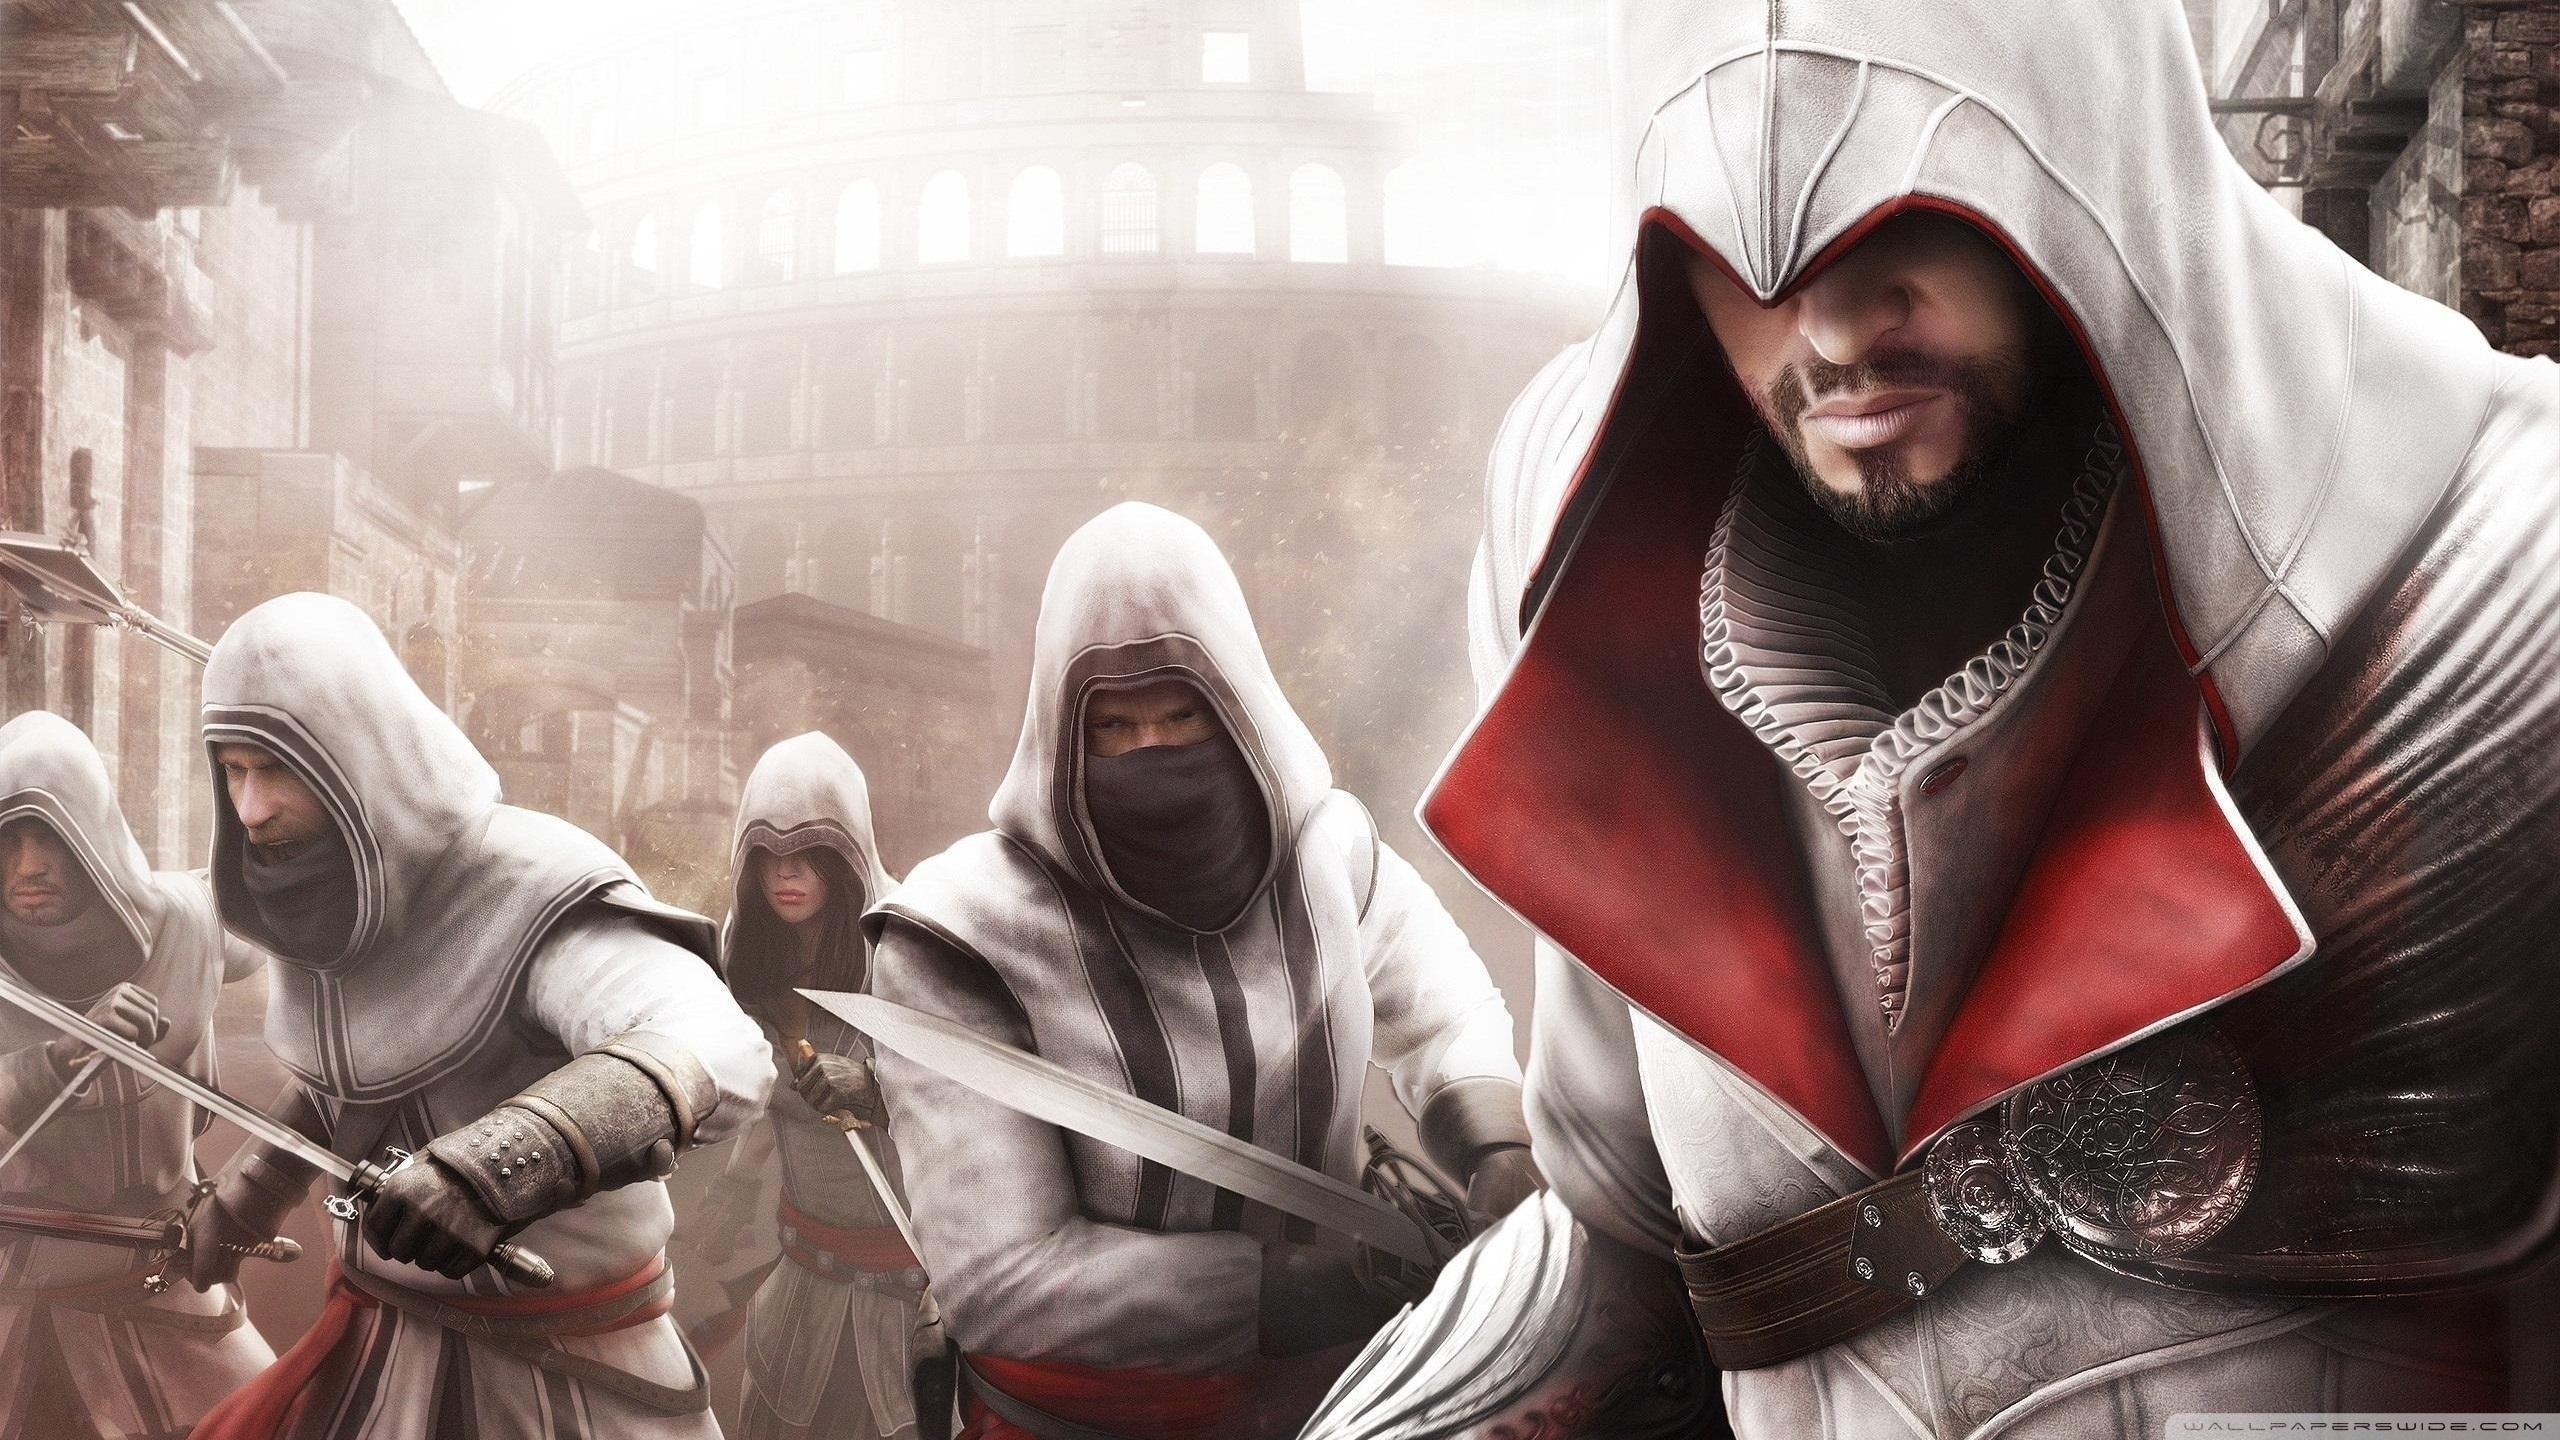 assassin's creed brotherhood ❤ 4k hd desktop wallpaper for 4k ultra